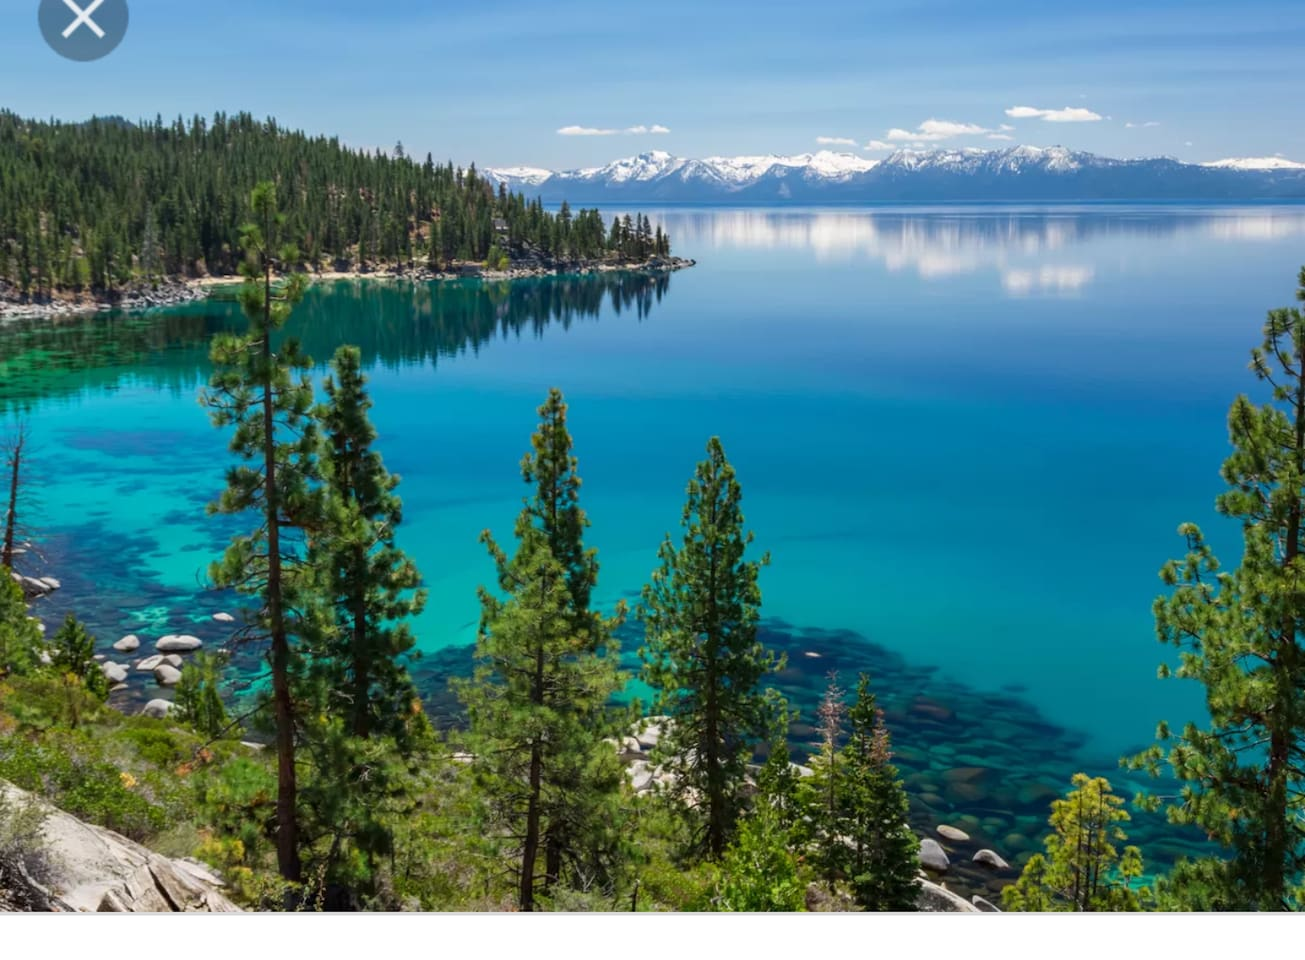 Tahoe is such a beautiful place.